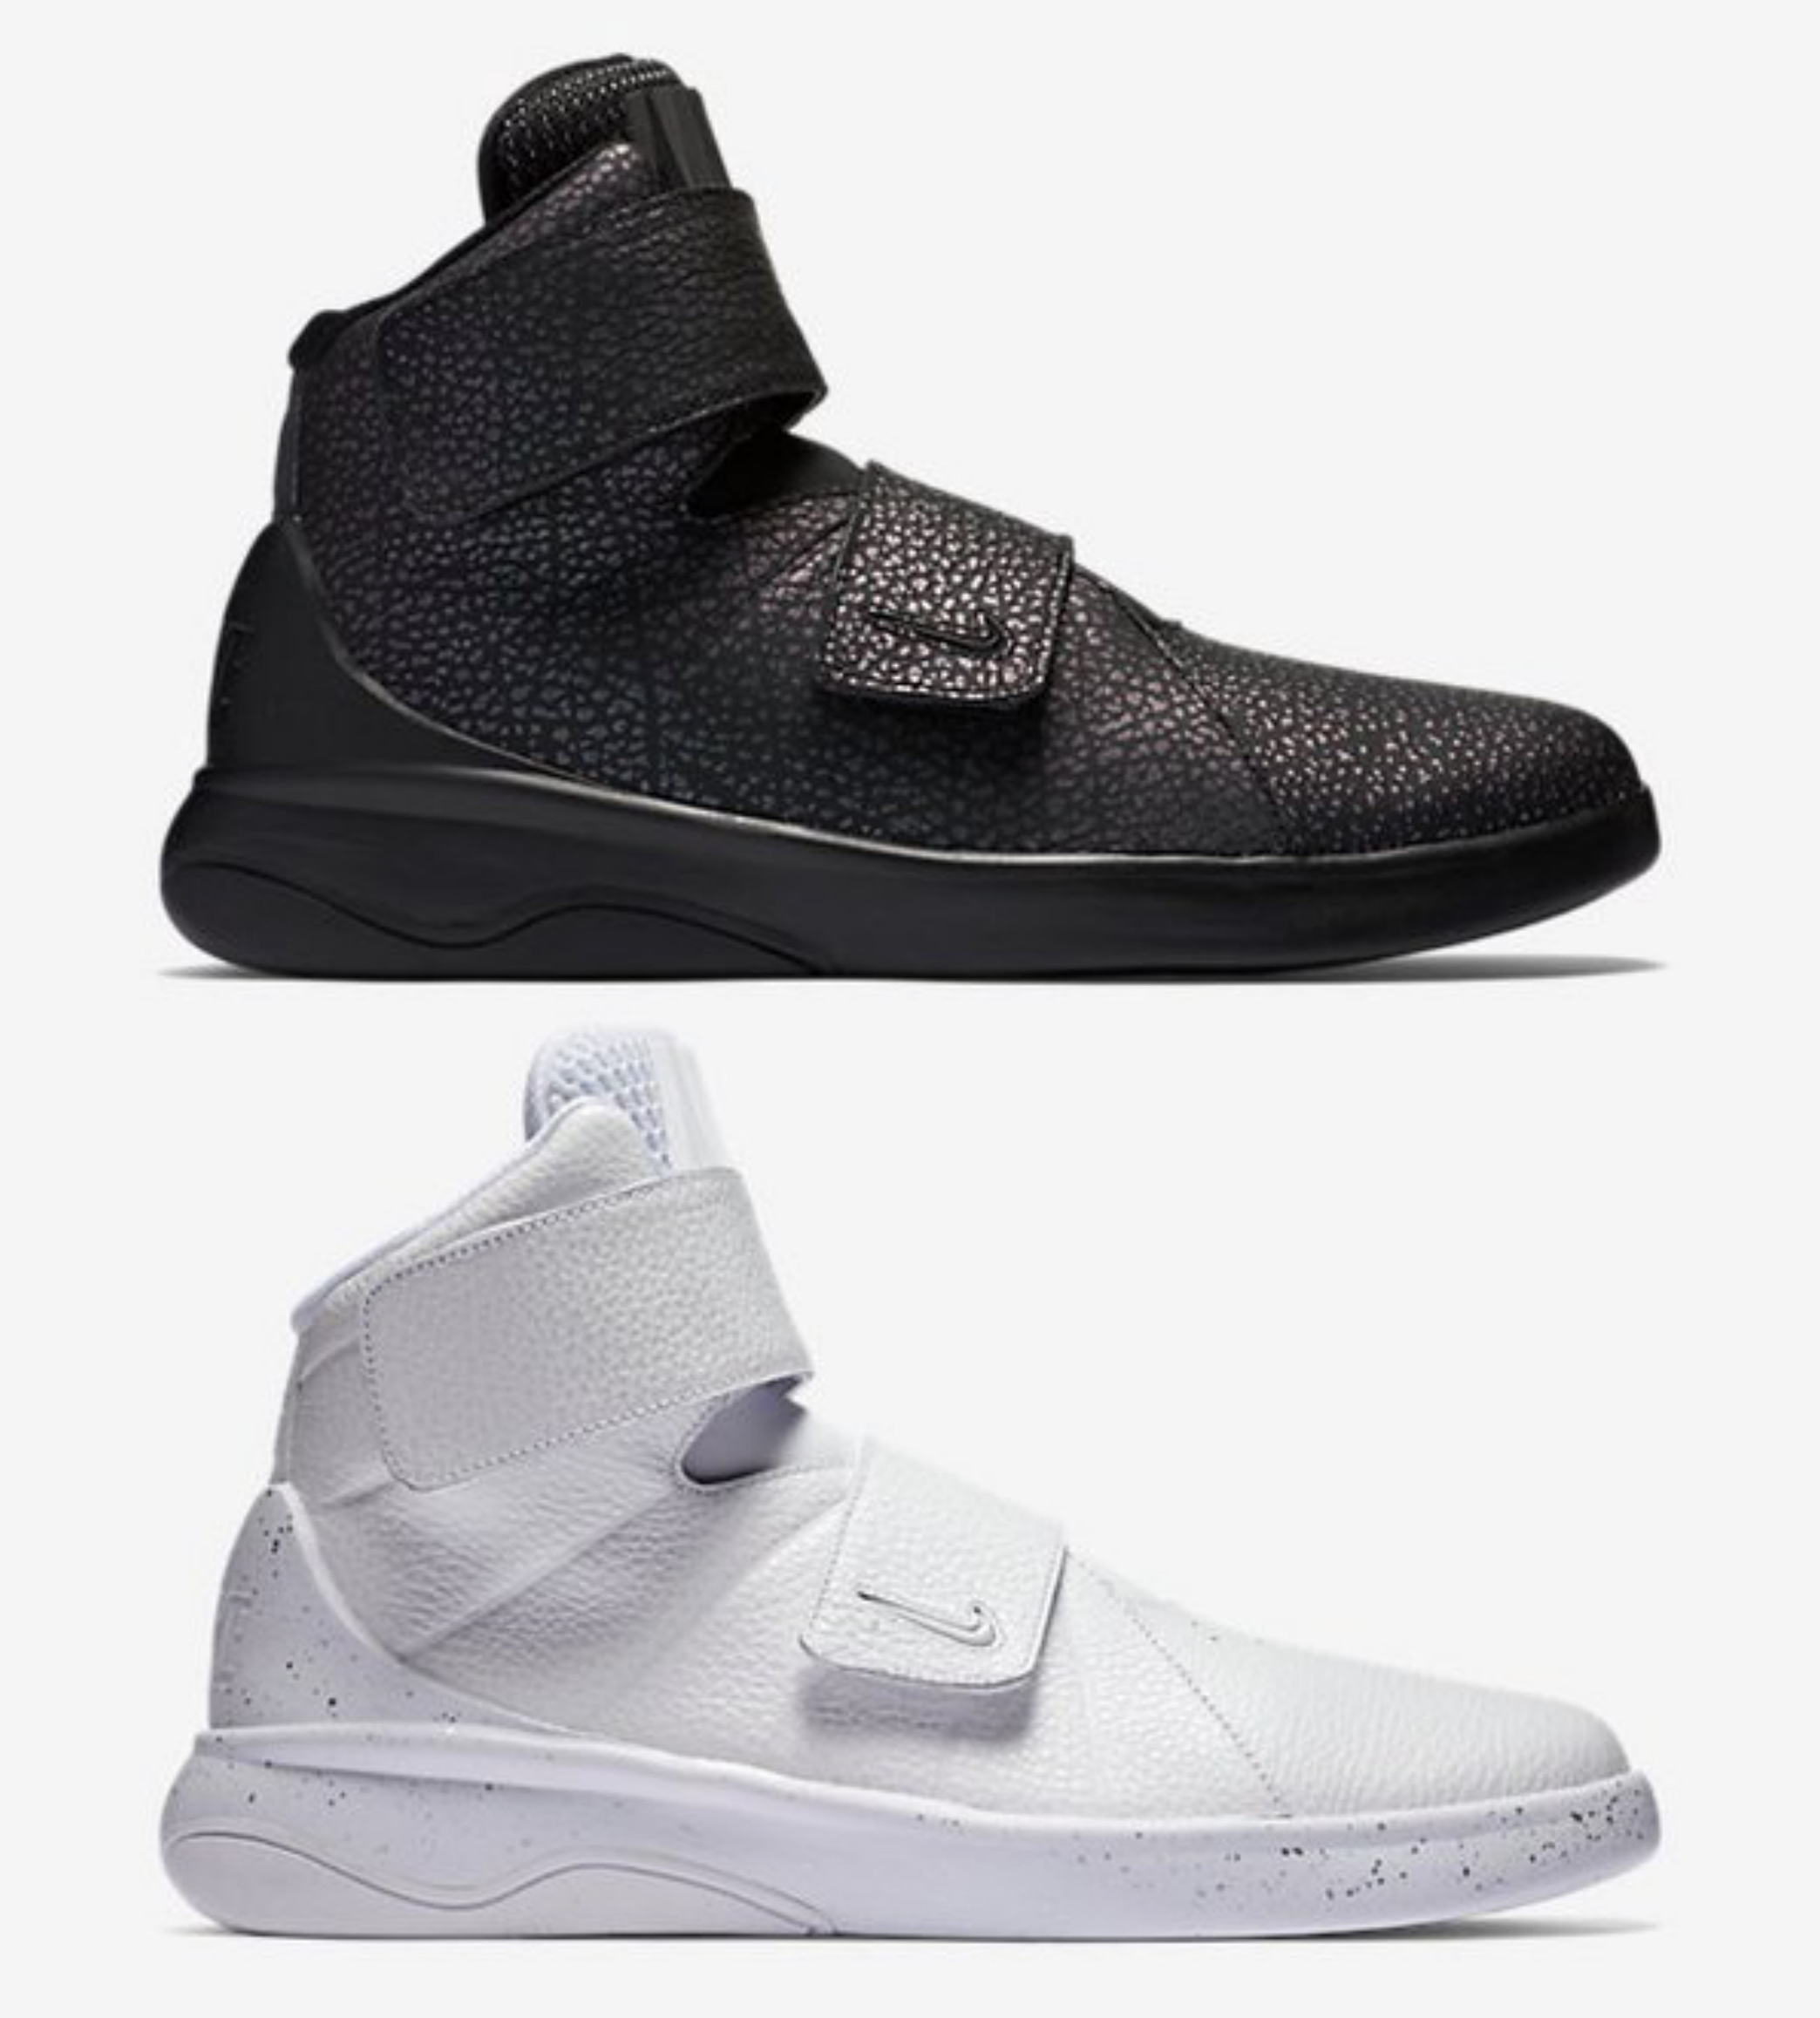 black nikes nike basketball shoes with